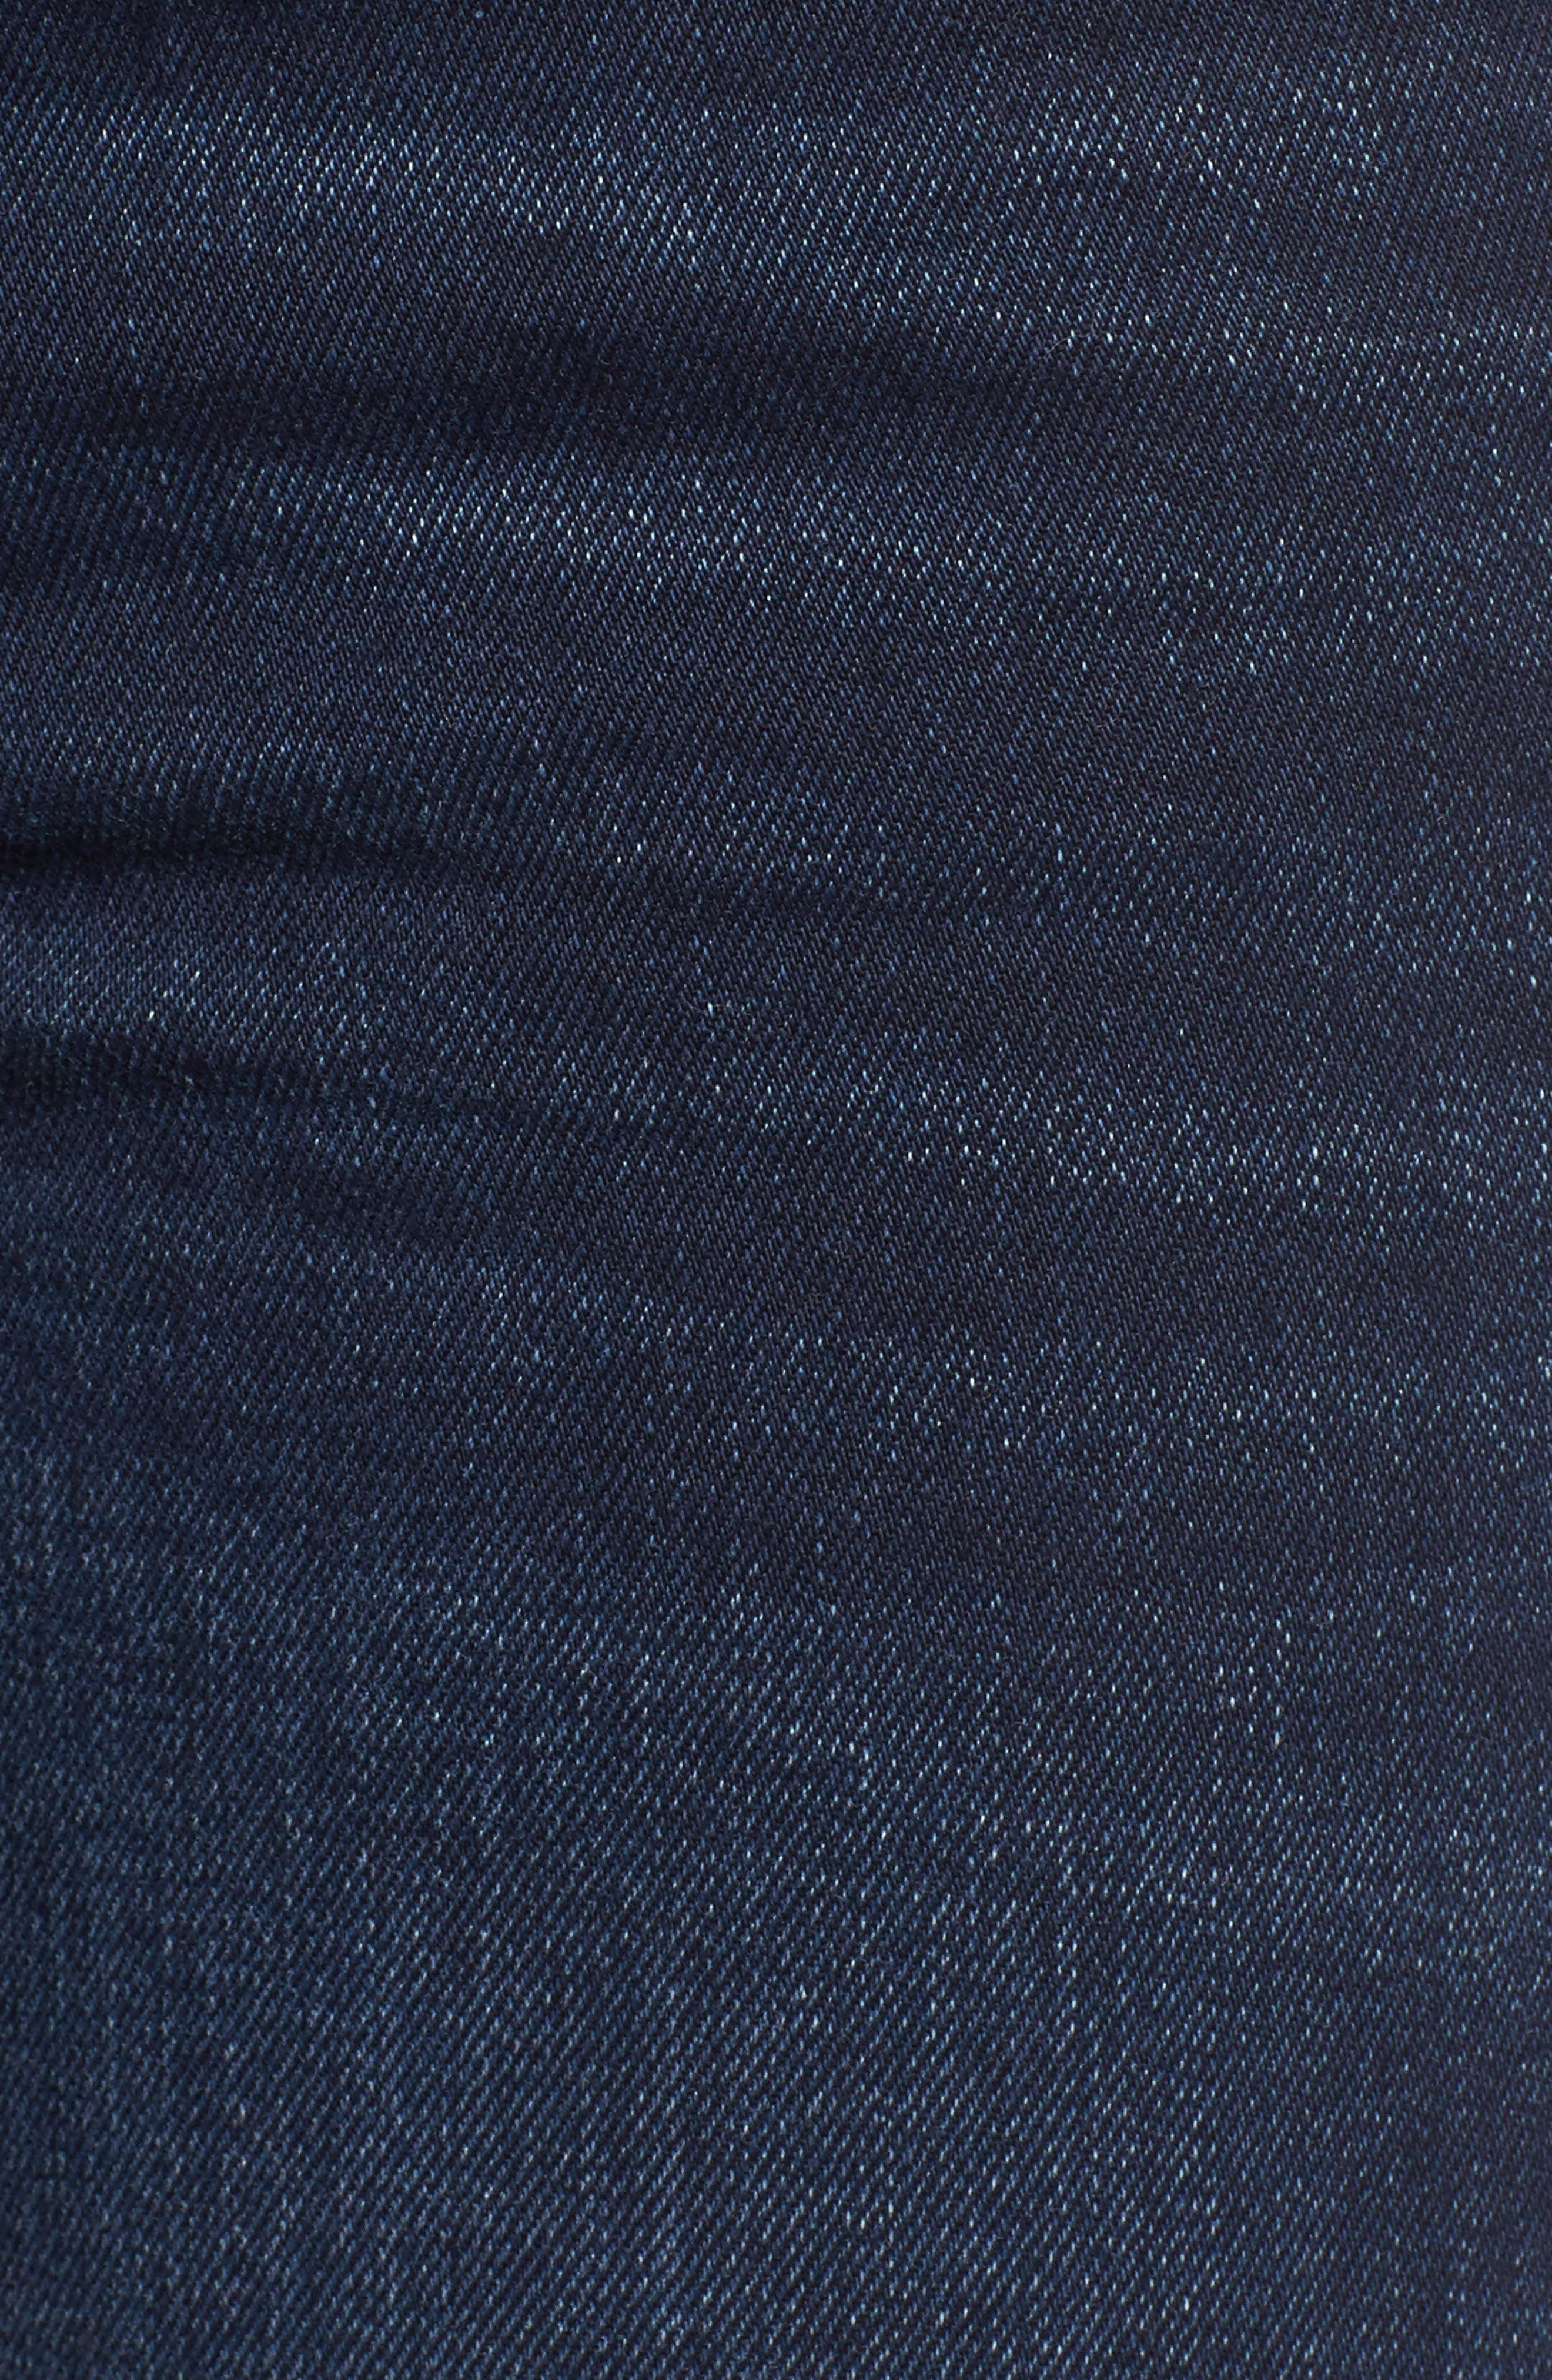 Alternate Image 6  - KUT from the Kloth Connie Skinny Ankle Jeans (Bloomed) (Regular & Petite)